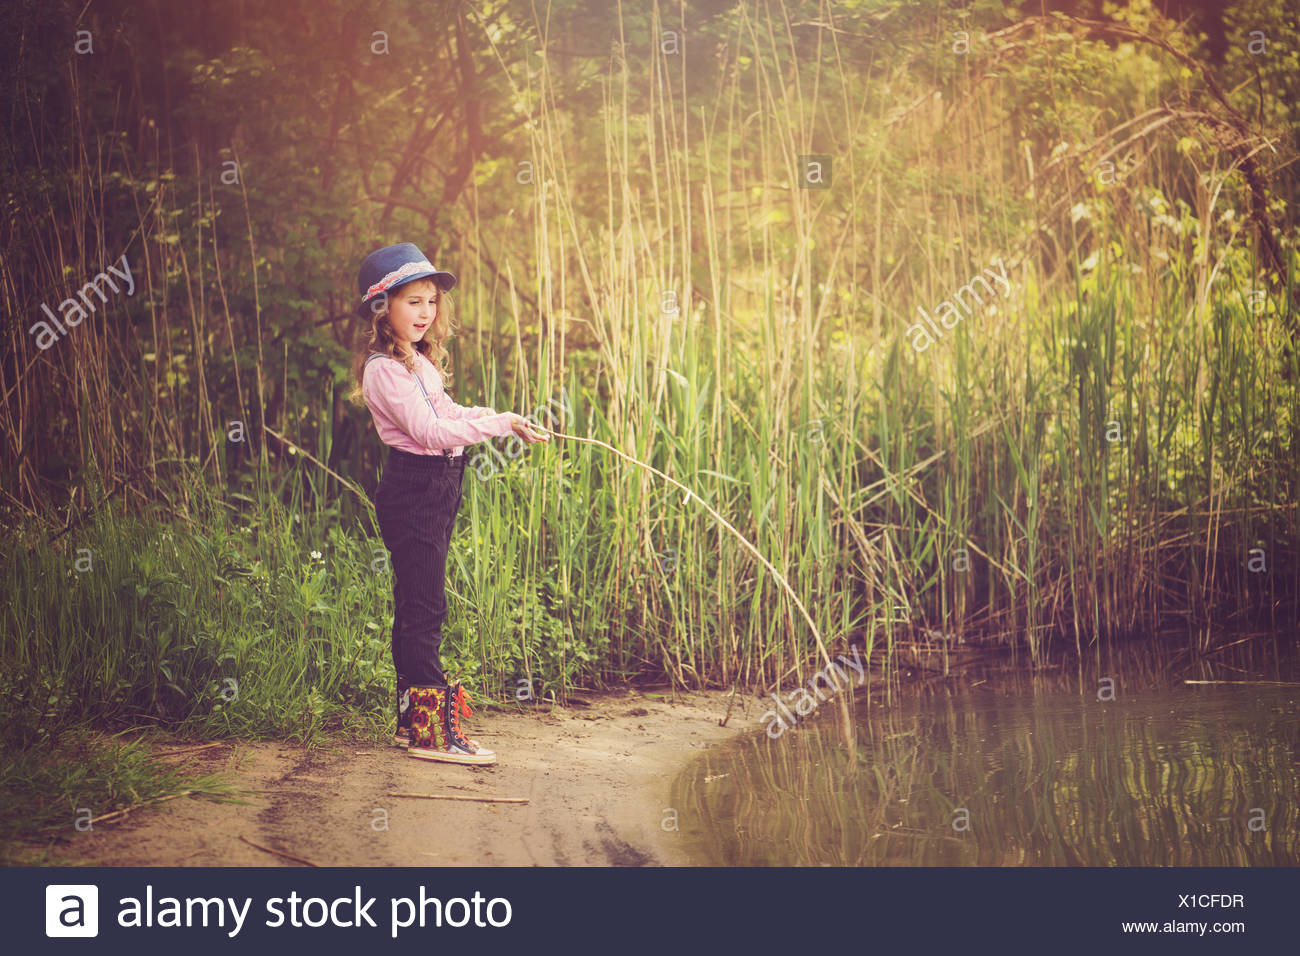 Girl fishing by the side of a lake - Stock Image